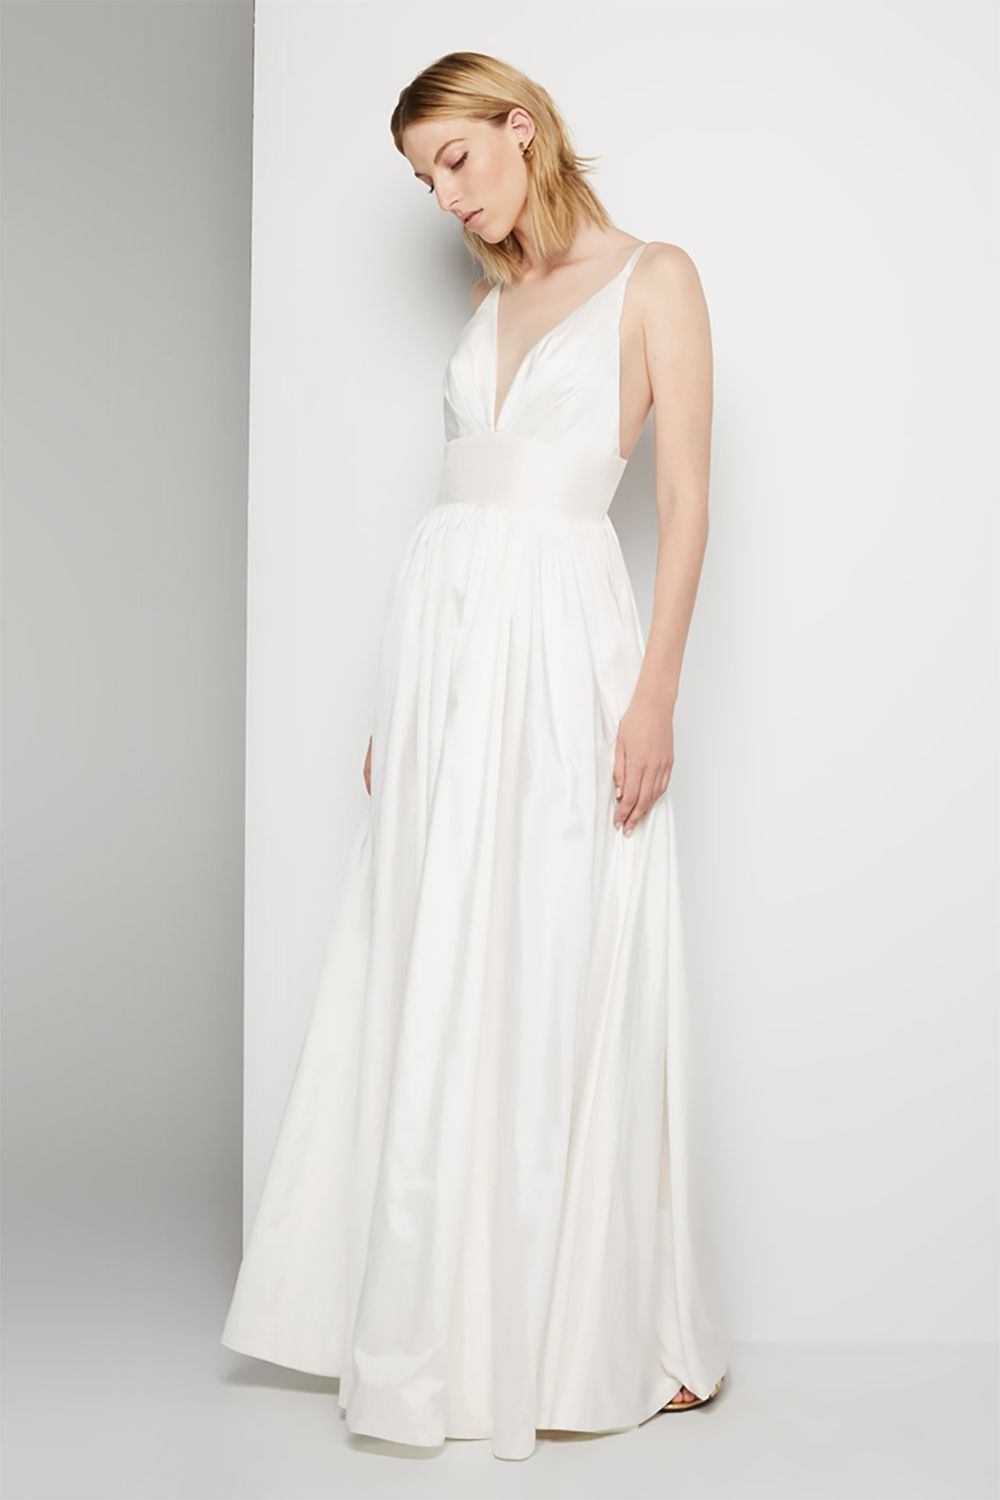 "<p>You might've looked into the online retailer because they let you pick out colors and customize necklines and skirts. They do that for their newly launched wedding category too, which includes this ultra-flattering spaghetti-strap number. </p><p>$239, <a href=""https://www.fameandpartners.com/dresses/dress-astrid-814?color=white"" target=""_blank"" data-tracking-id=""recirc-text-link"">fameandpartners.com</a>.</p>"